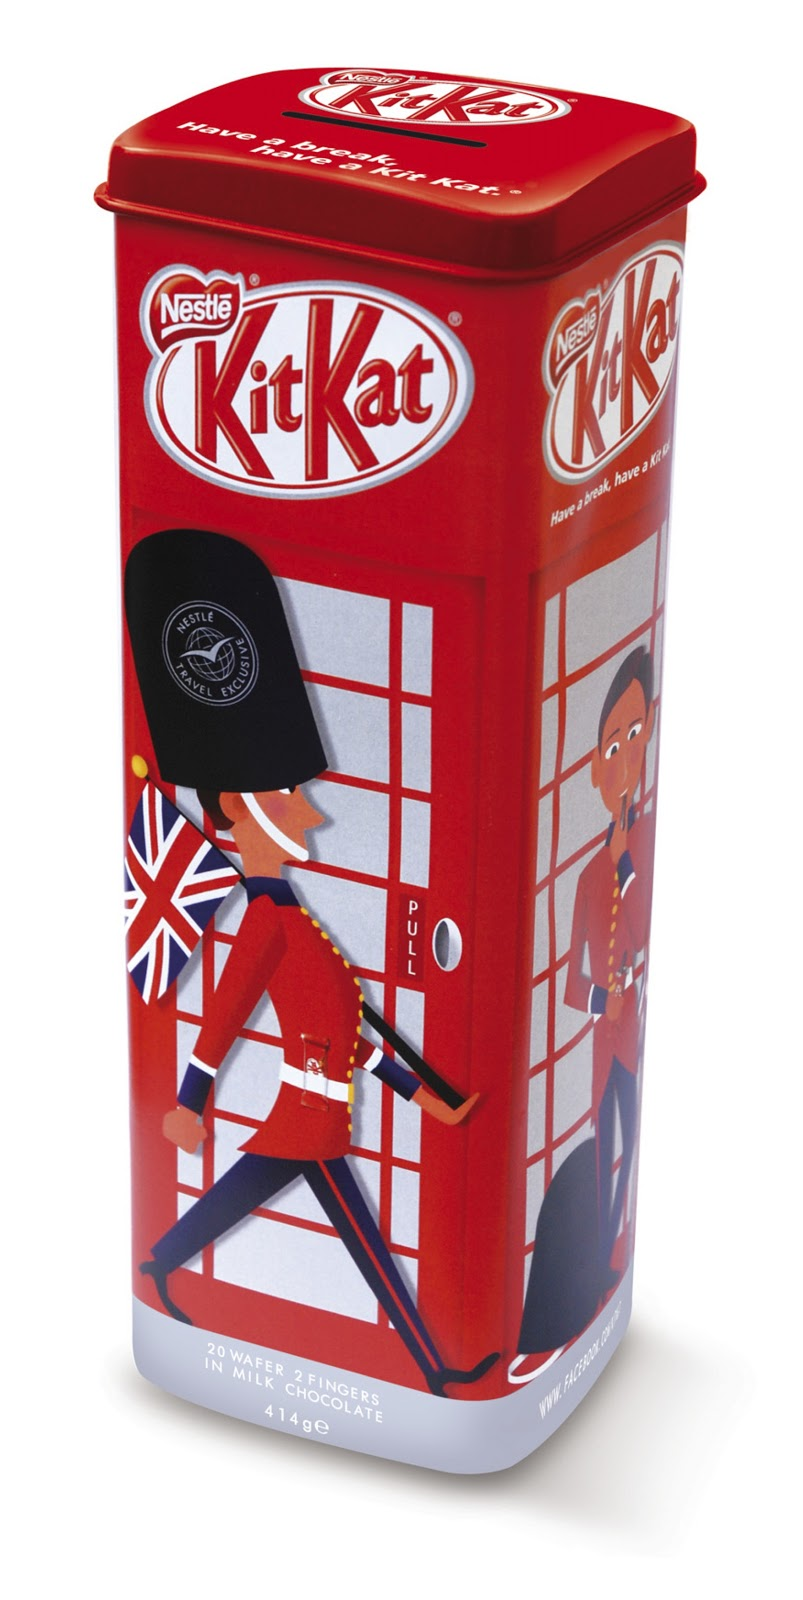 Essential Communications: April 2013 Smarties Box Design